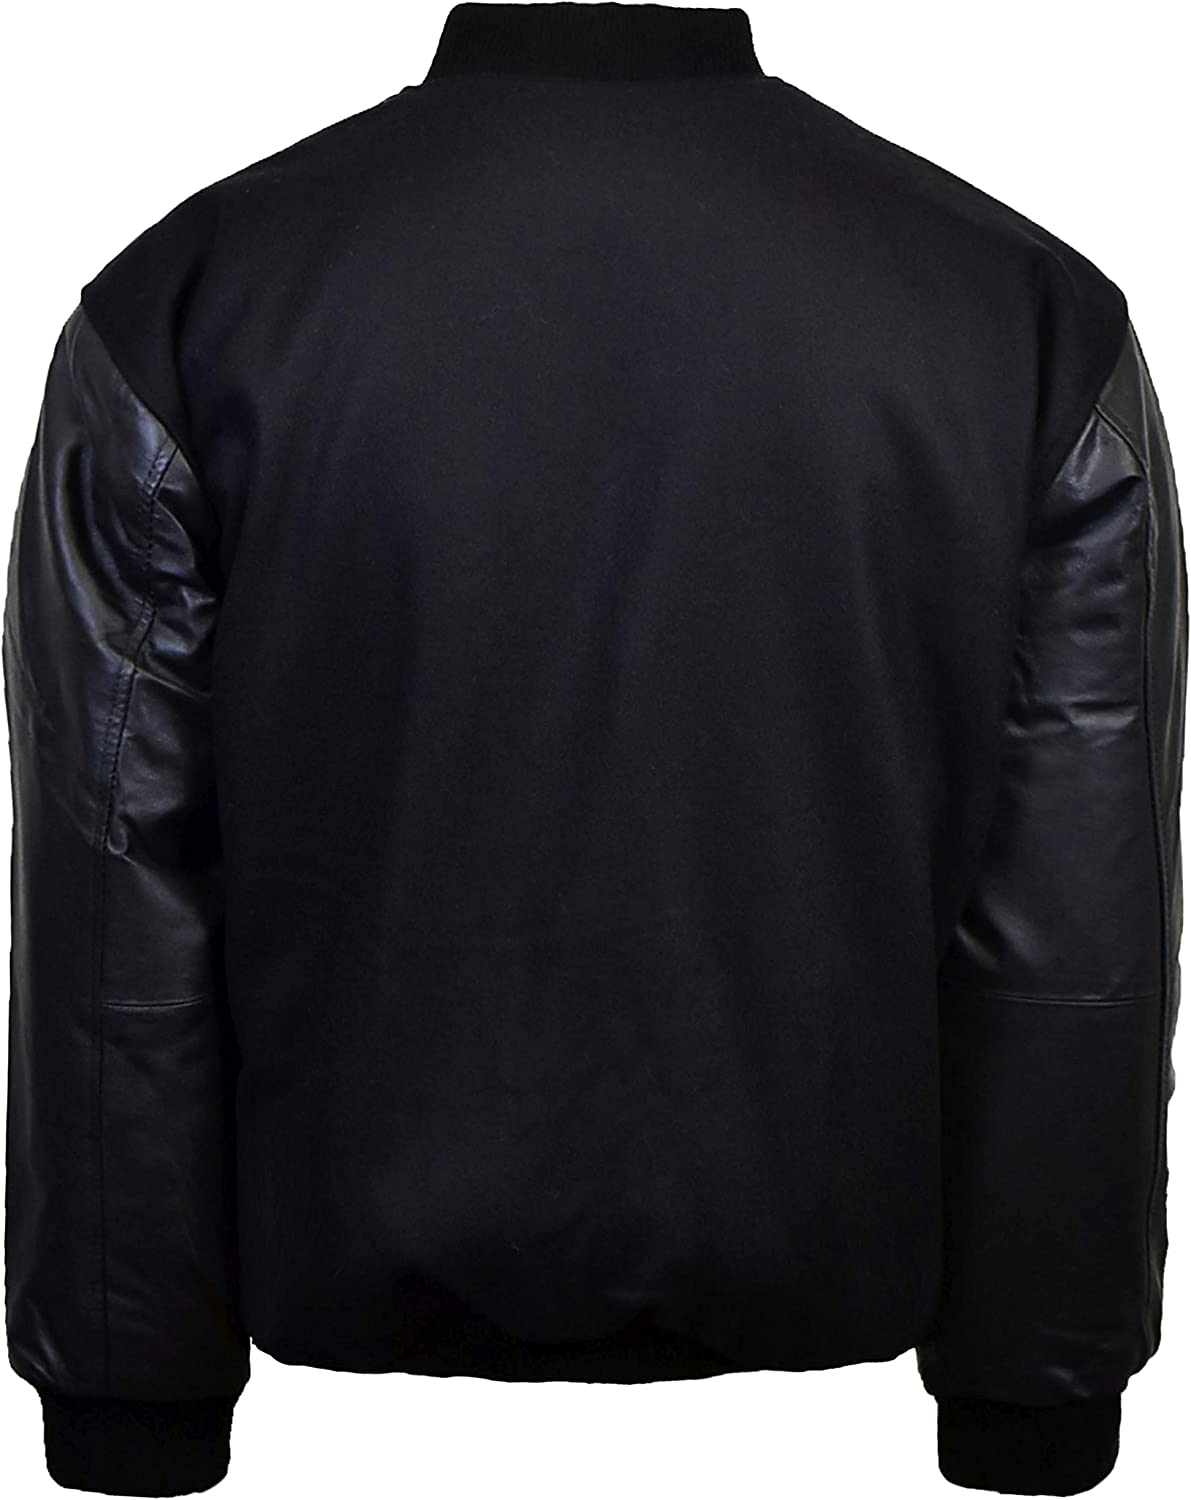 Victory Outfitters Mens Wool Blend Letterman Jacket with Genuine Leather Sleeves